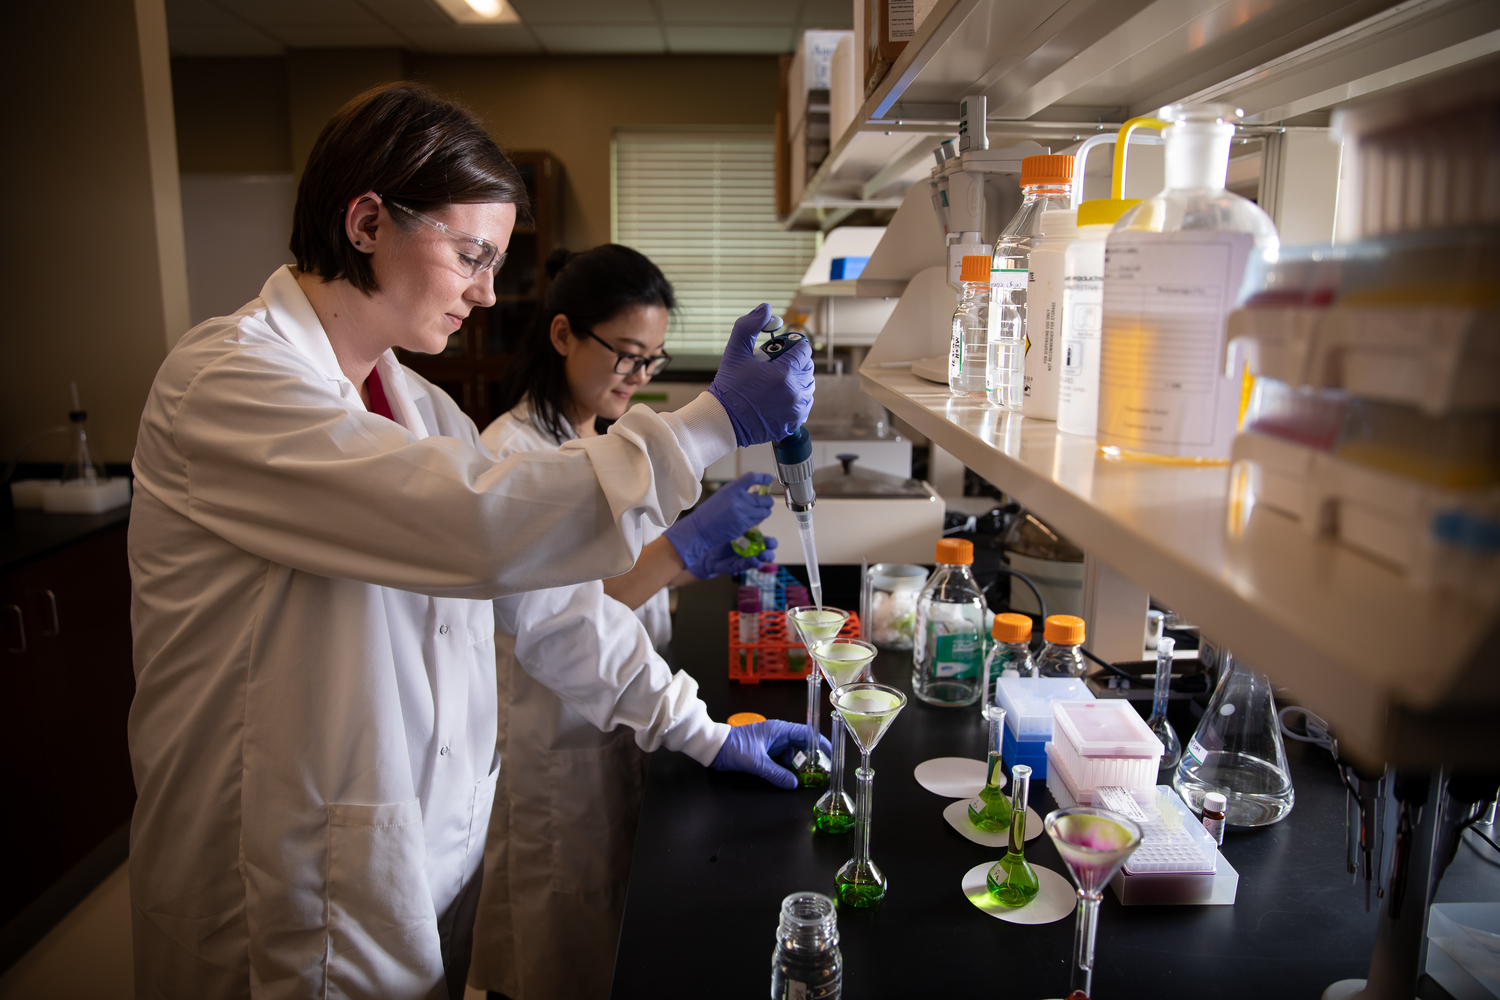 Women in lab doing research